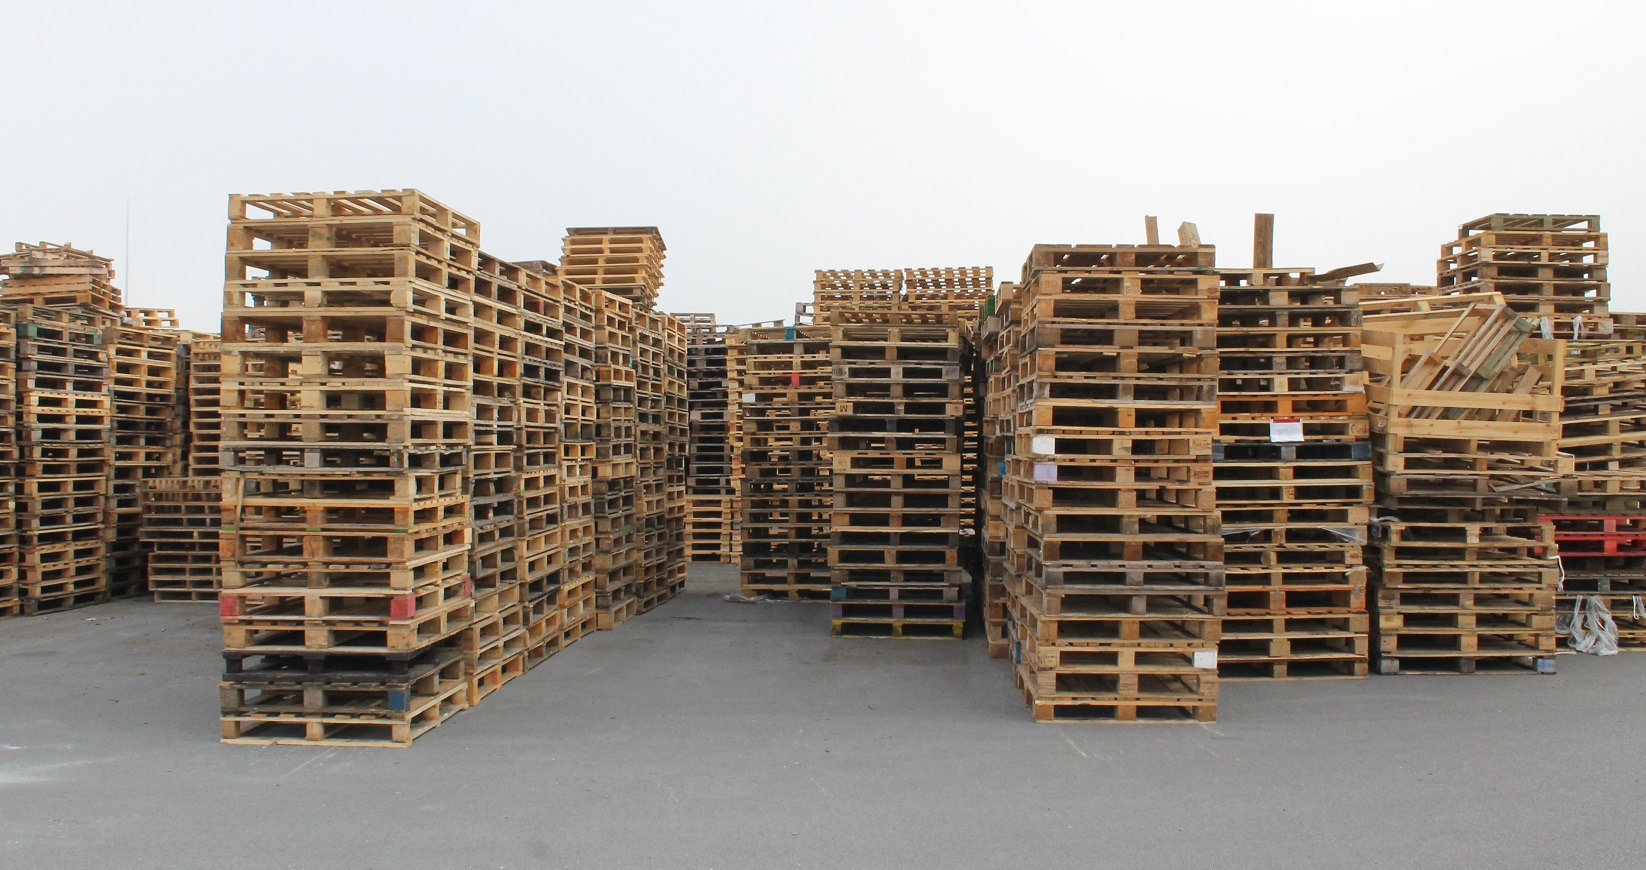 Pallets to sort